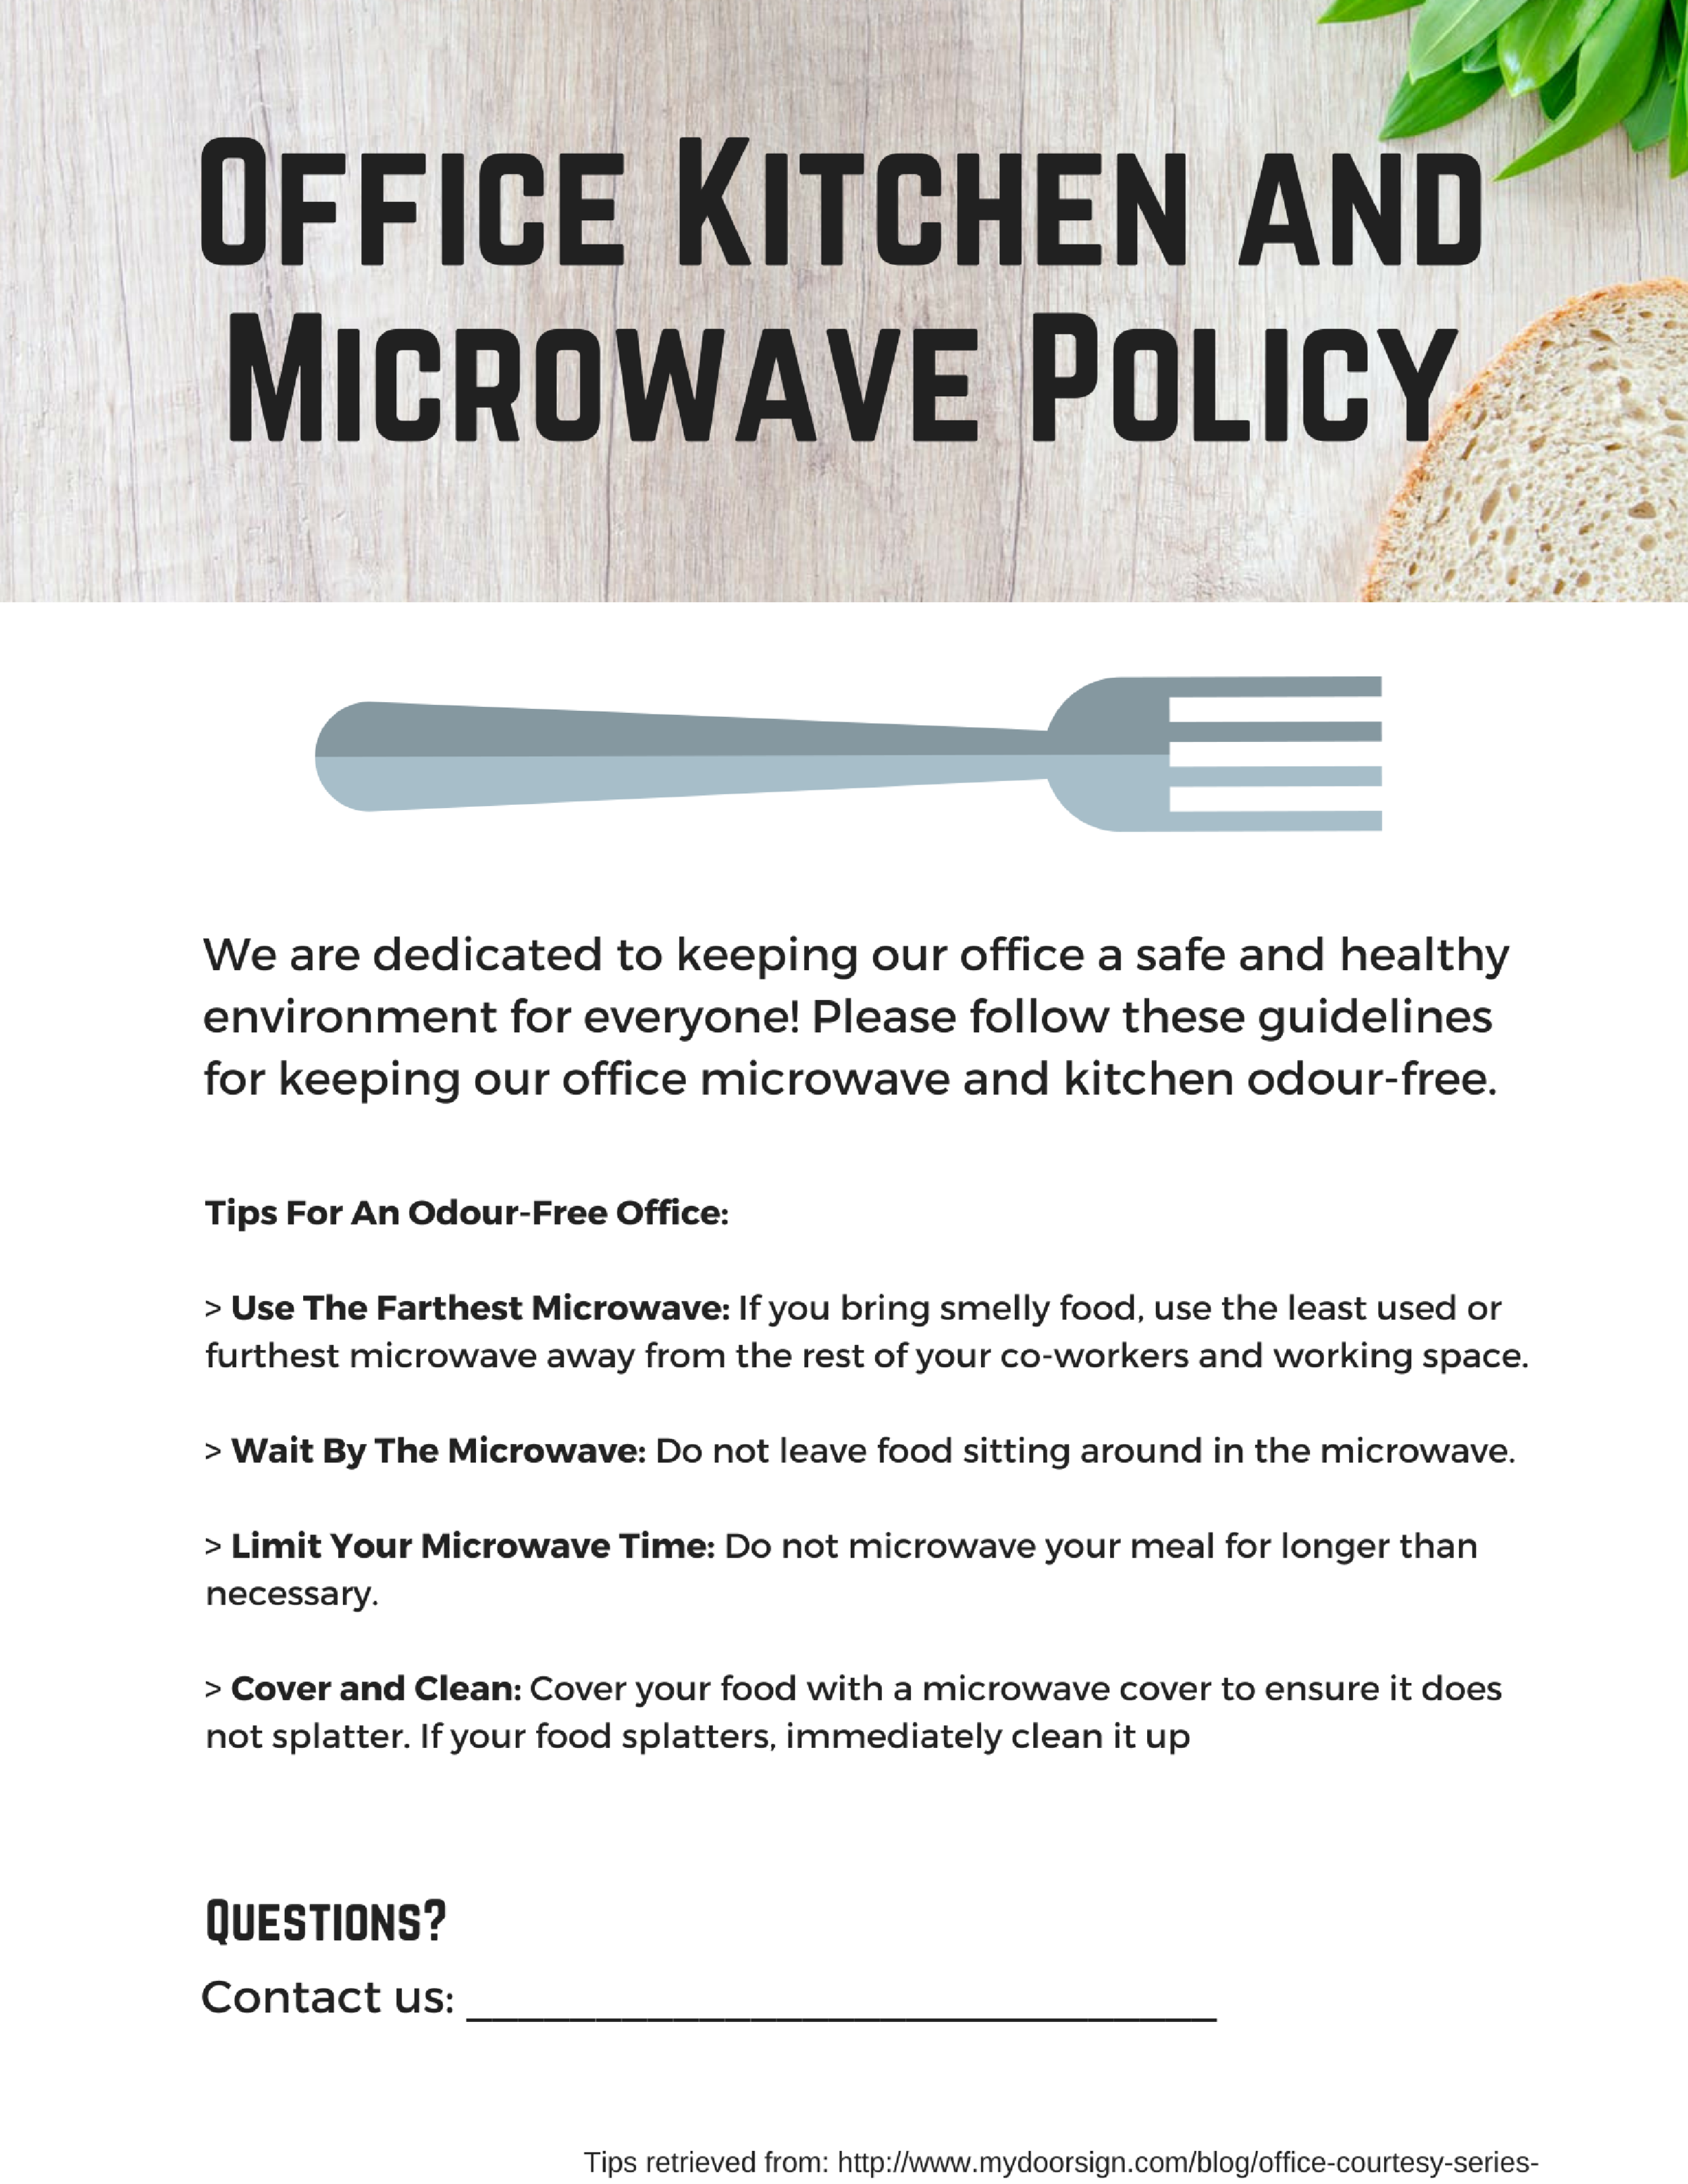 Office Kitchen and Microwave Policy.png